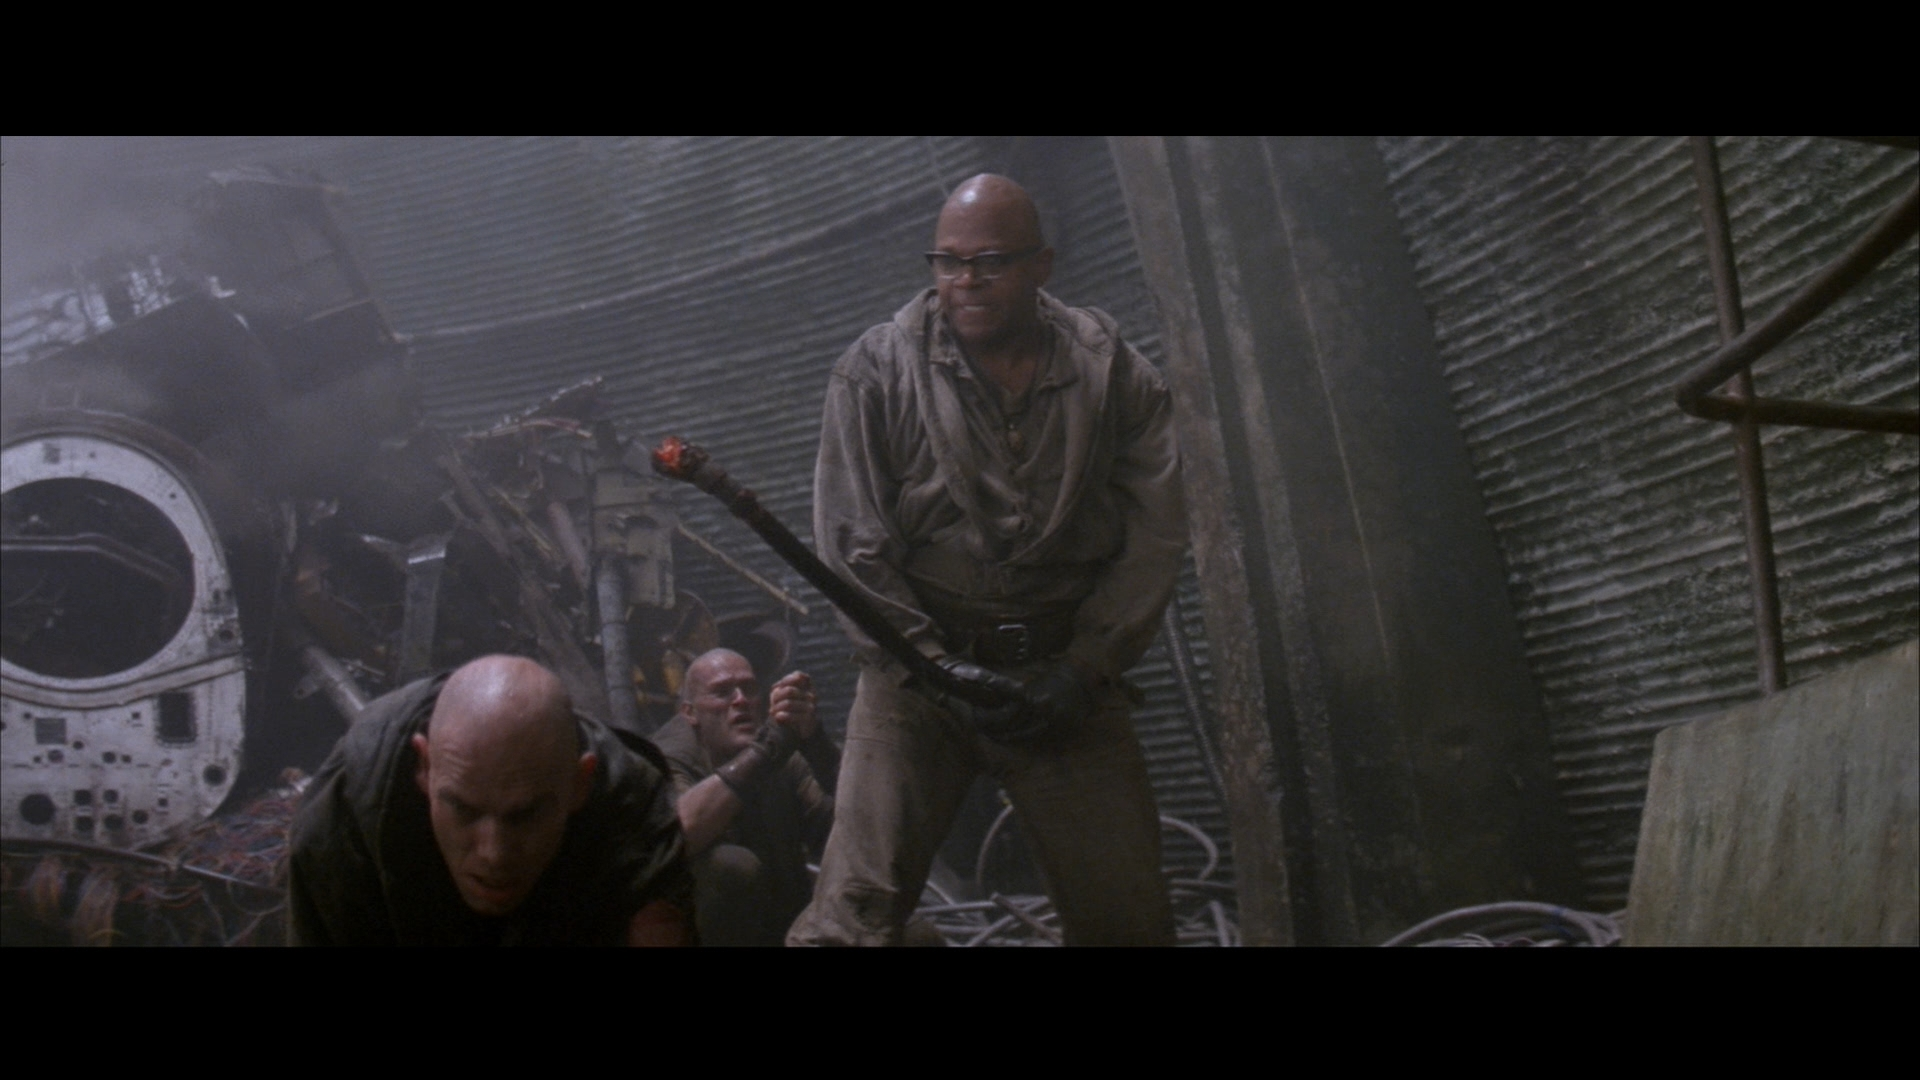 ALIEN3 (1992) - Dillon's (Charles S. Dutton) Complete Costume - Image 14 of 17